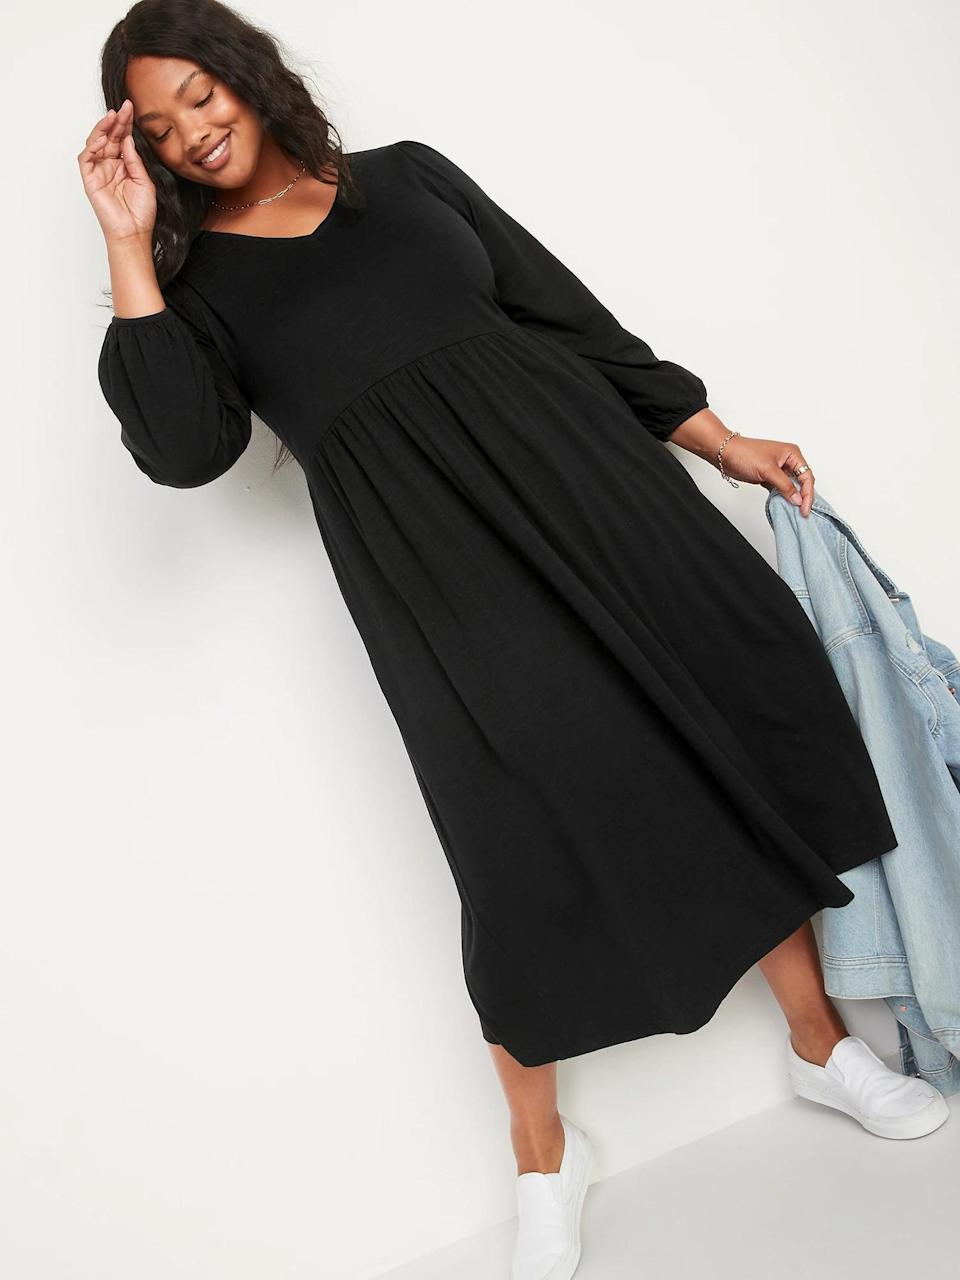 <p>We love the cut of this <span>Old Navy Long-Sleeve Fit and Flare Slub-Knit Midi Dress</span> ($40) with a shirred empire waist and puffed sleeves. With its relaxed yet put-together look, it's perfect to take anywhere.</p>